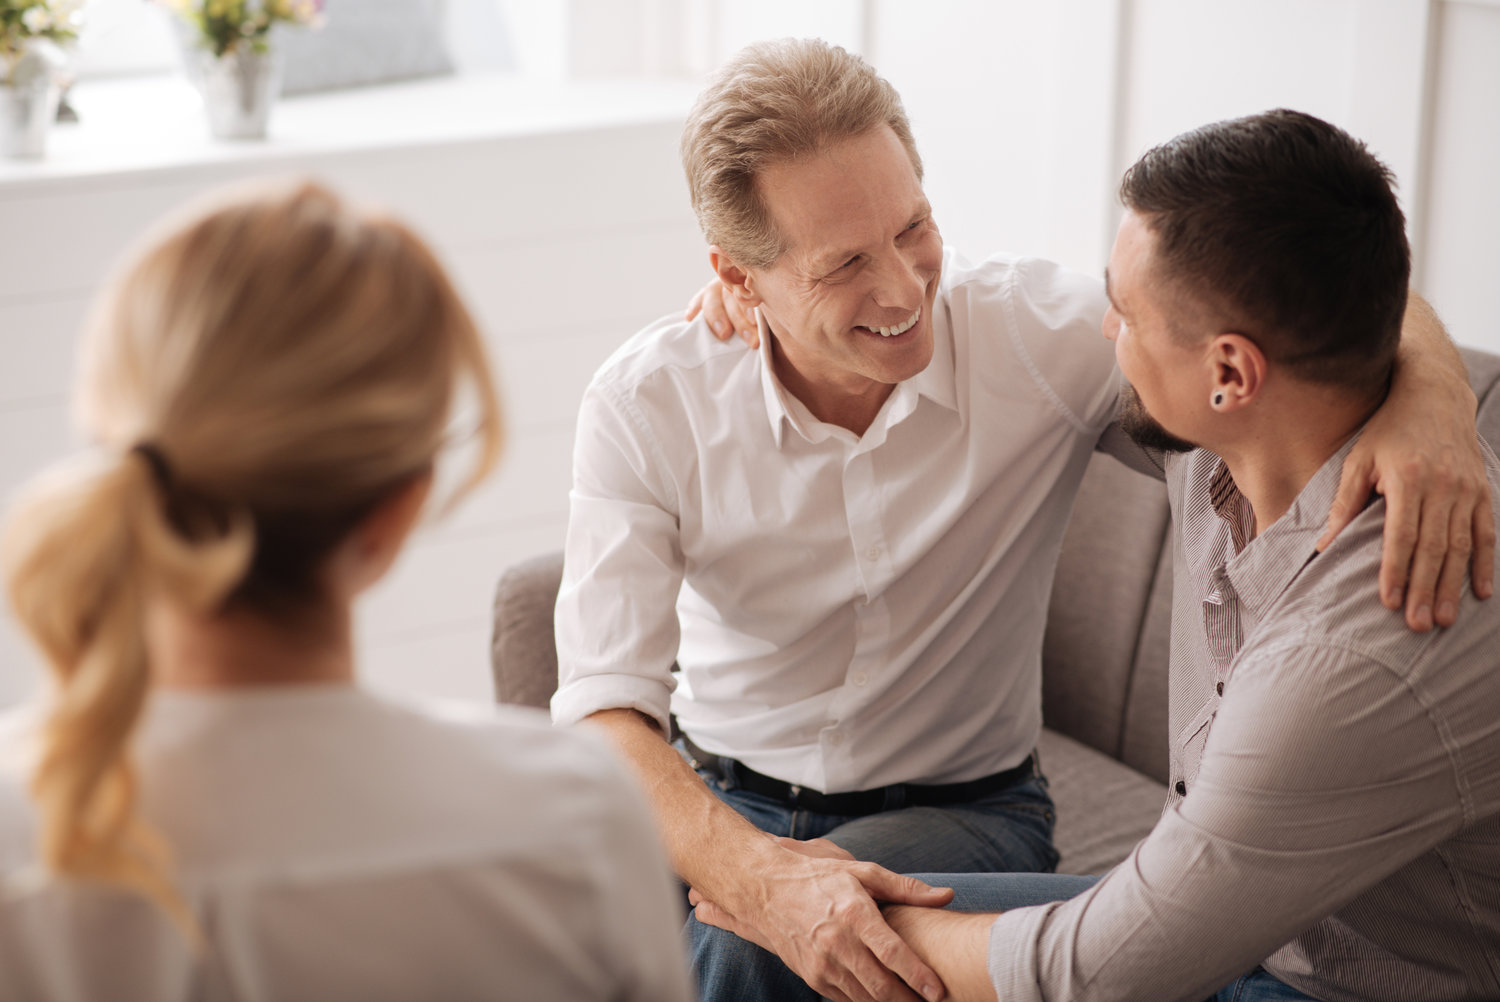 Napa Sex therapists, couples counseling, marriage counseling, couples therapy, sex and intimacy coaching, sex therapy napa valley and north bay area San+Francisco+Oakland+Berkeley+Marin+Premarital+Counseling+Program-1.jpg